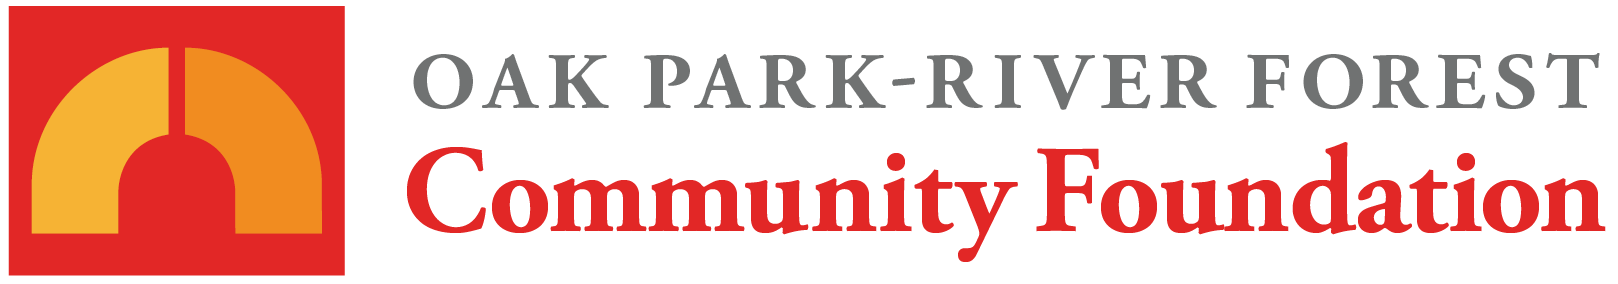 Oak Park-River Forest Community Foundation